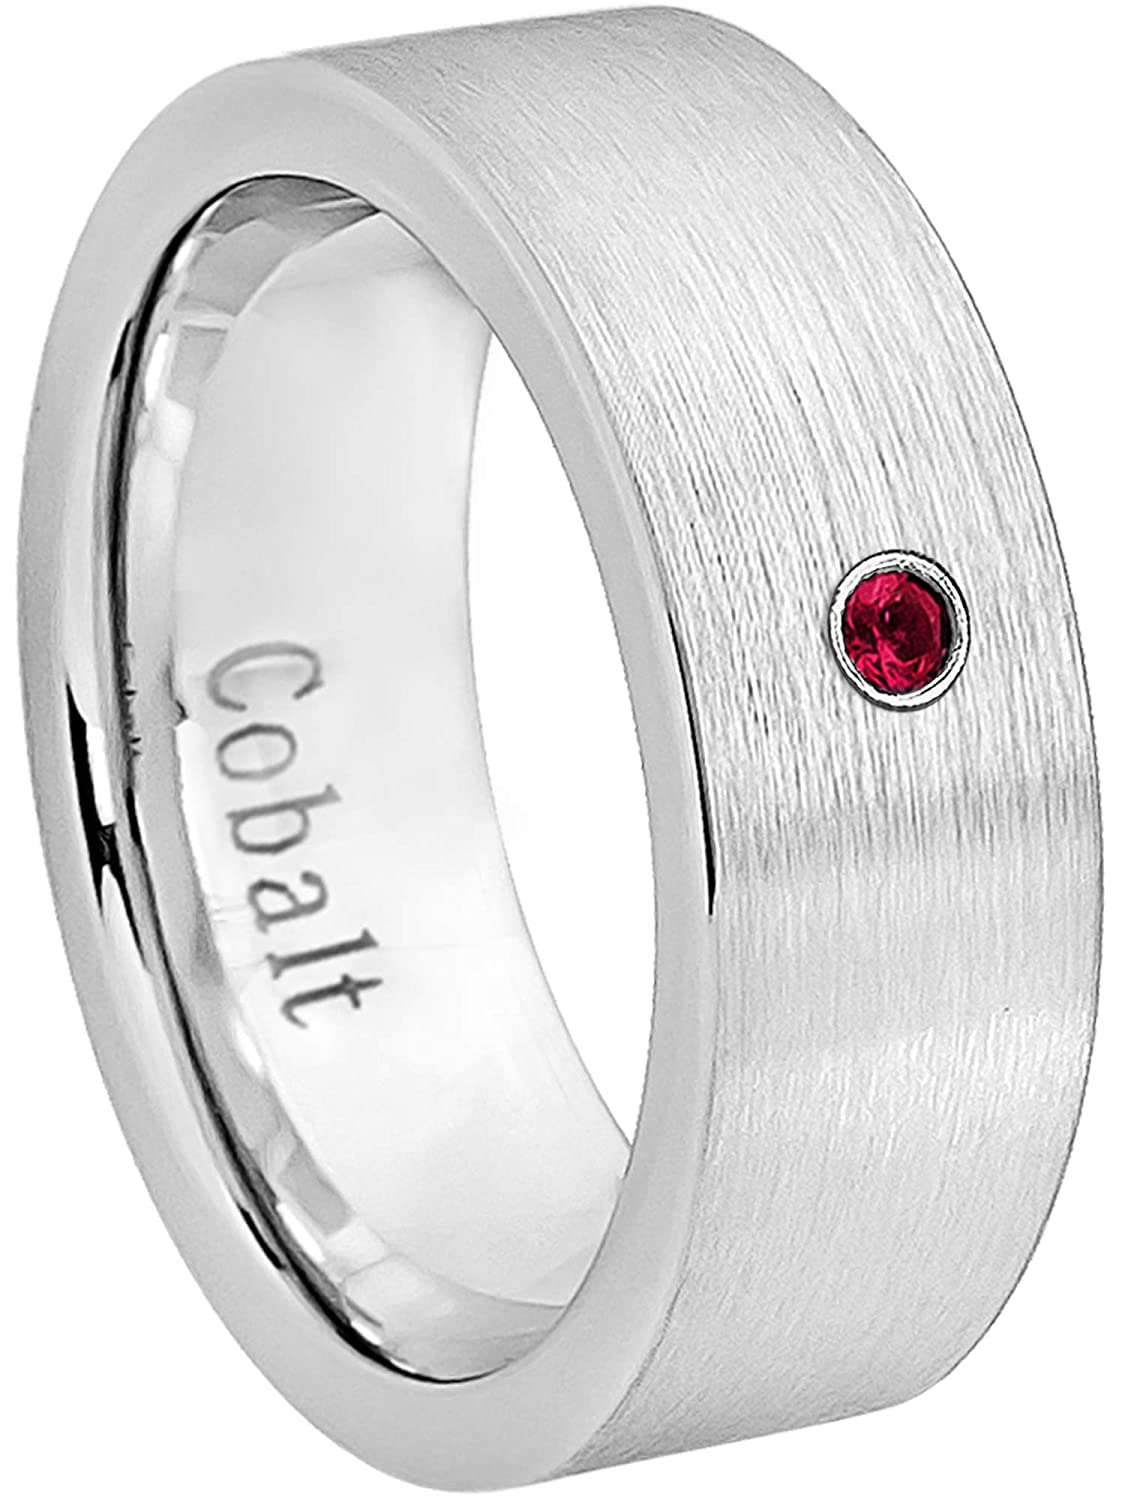 July Birthstone Ring 0.07ct Ruby Cobalt Ring Jewelry Avalanche 8MM Comfort Fit Brushed Pipe Cut Mens Cobalt Chrome Wedding Band